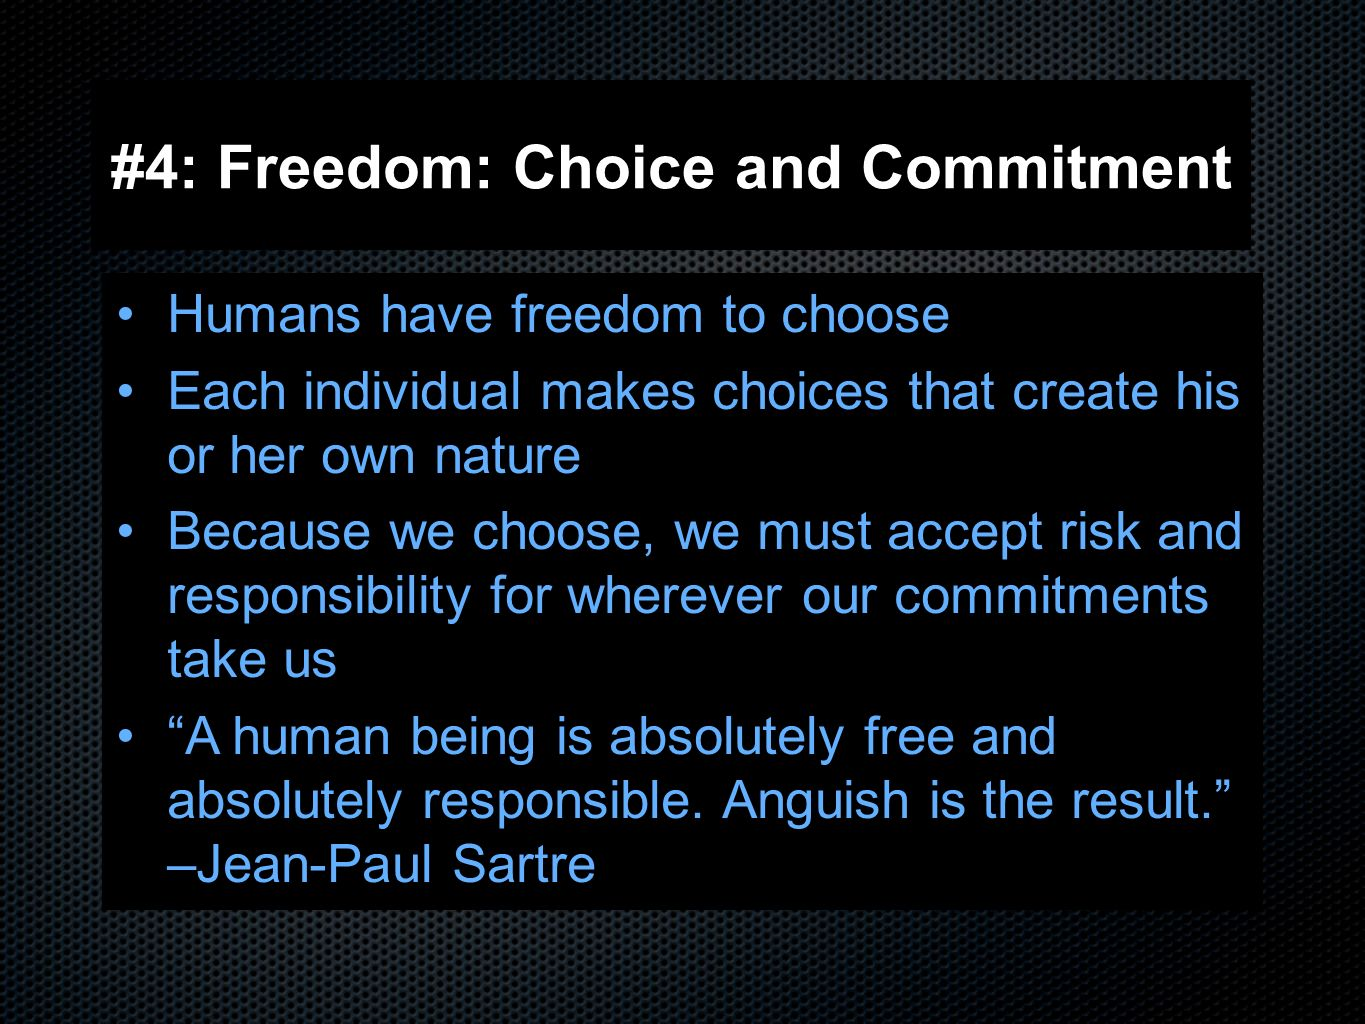 responsibility and choices according jean paul sartres existentialism 2008-3-12 sartre's being-for-heidegger heidegger's being-for  in taking existentia and essentia according to their  jean-paul existentialism is a humanism, in.